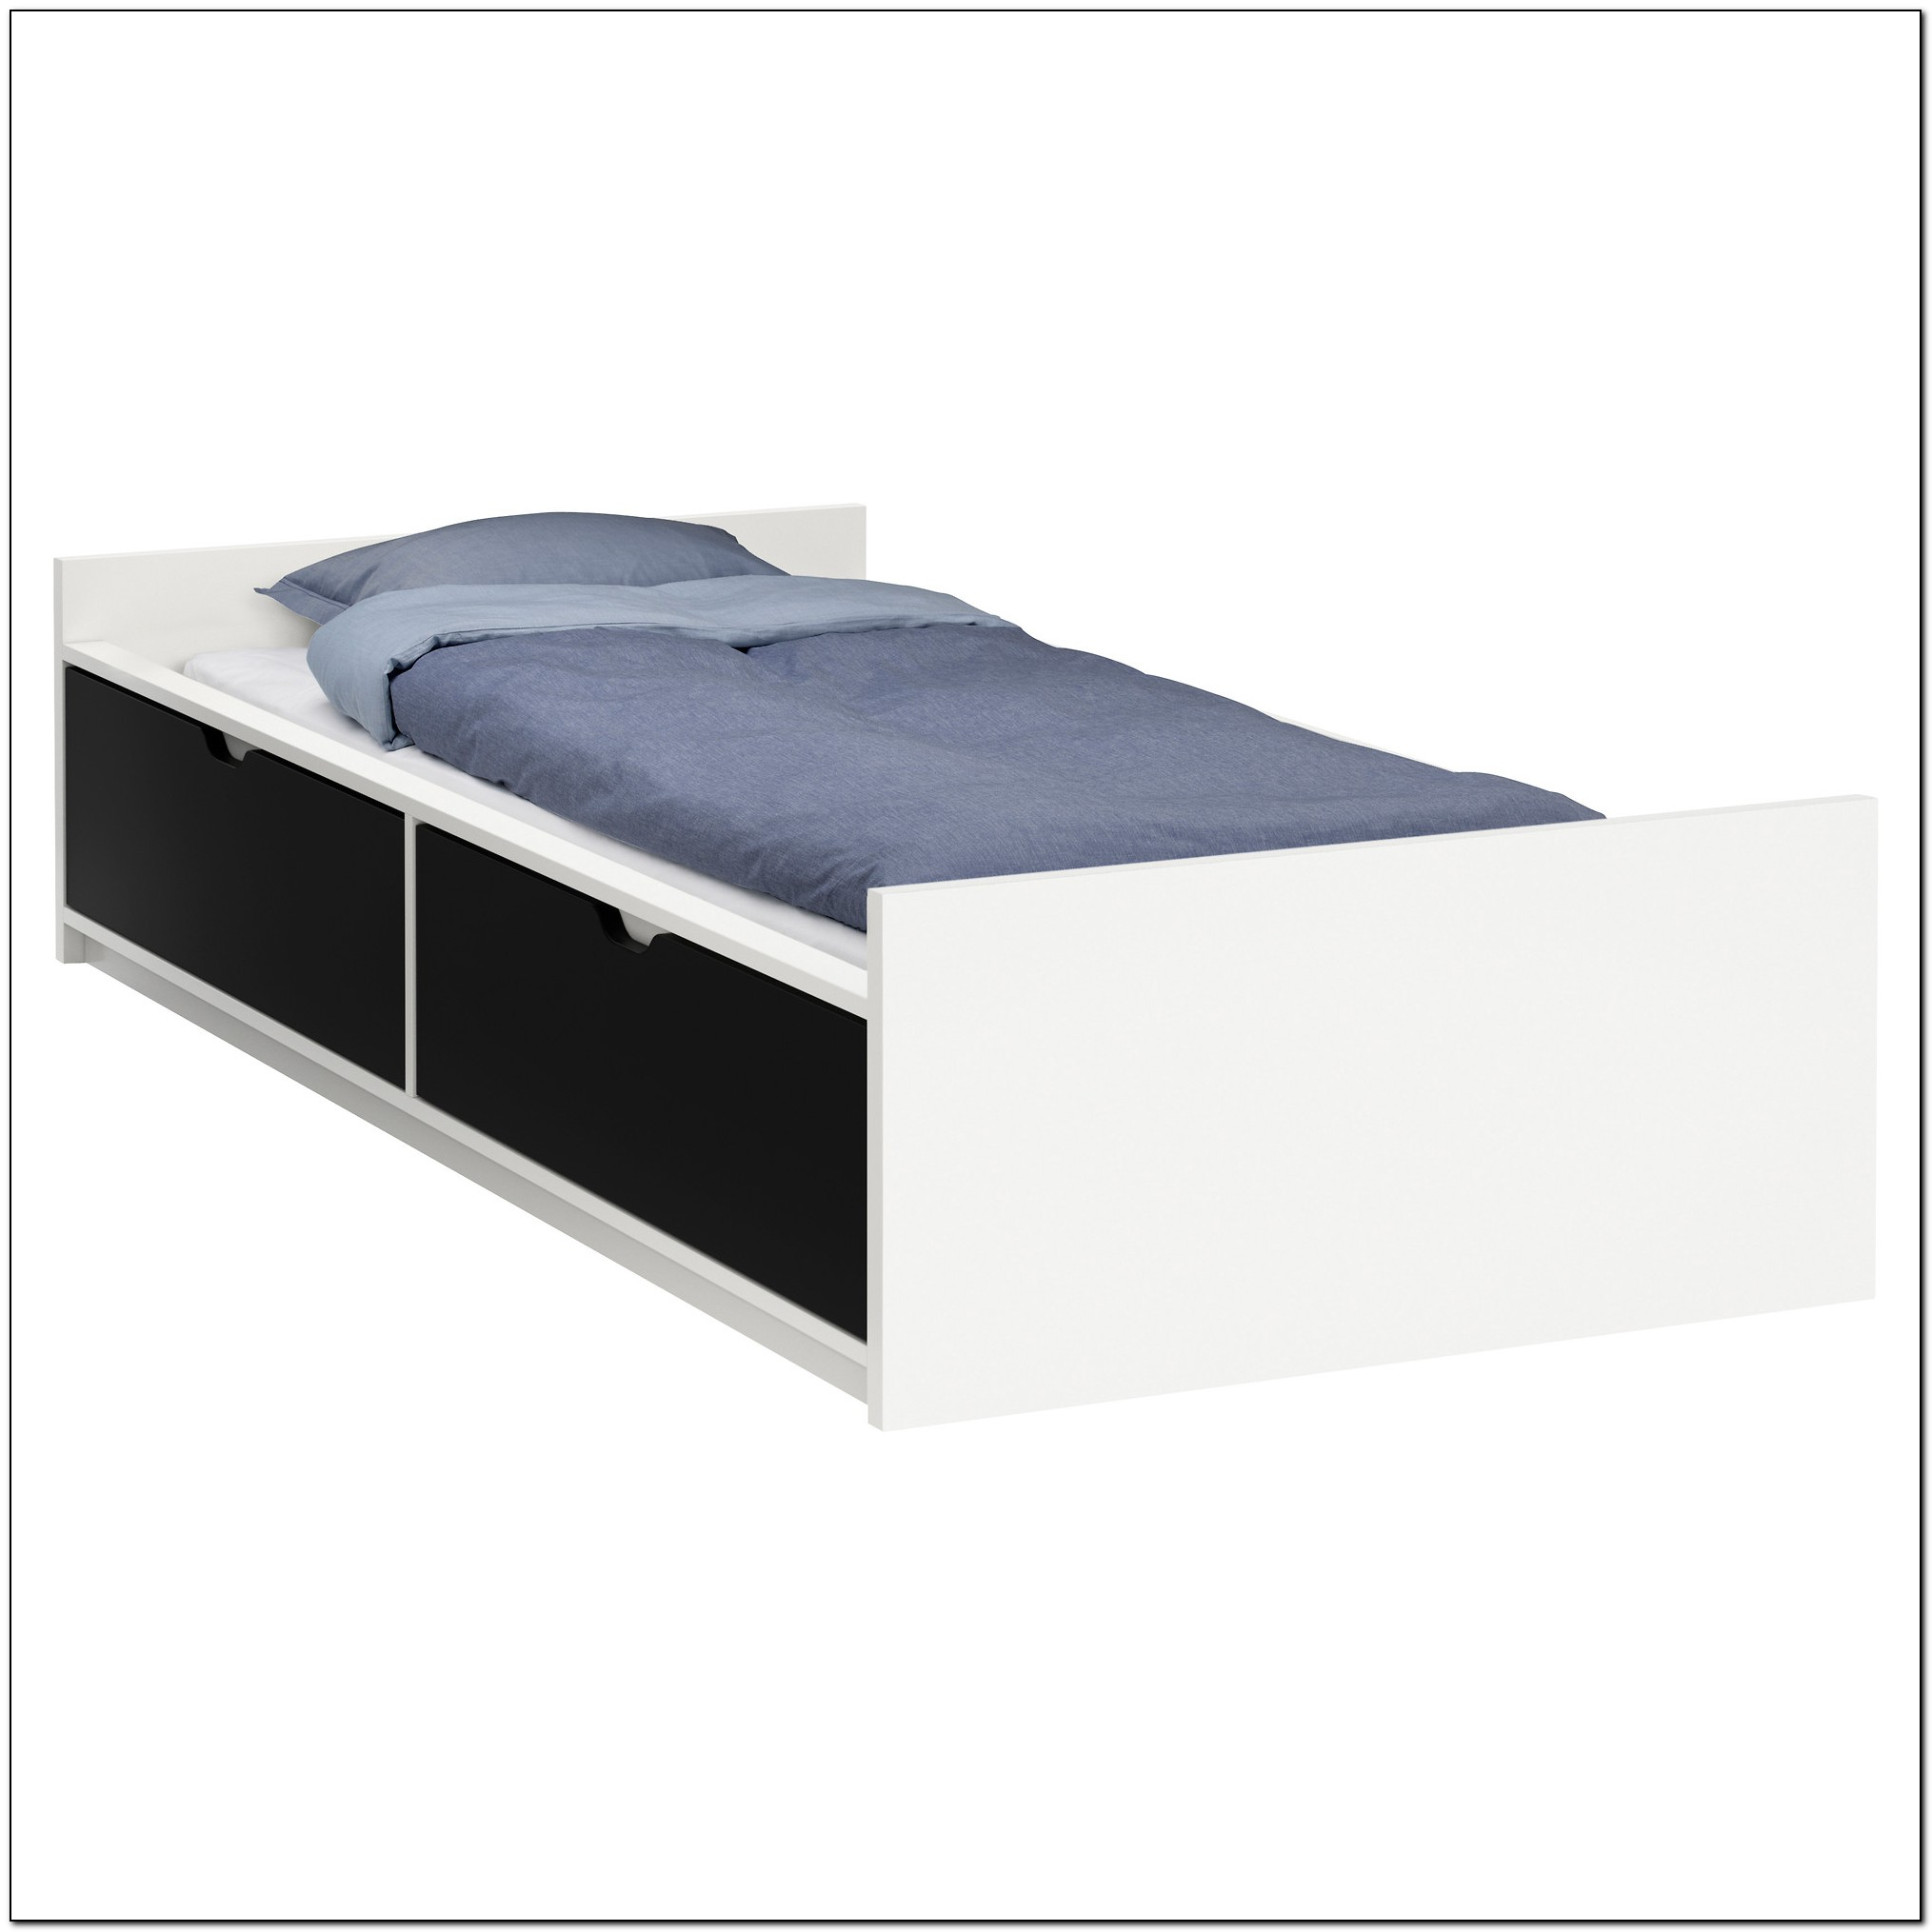 Ikea Twin Bed With Drawers Beds Home Design Ideas